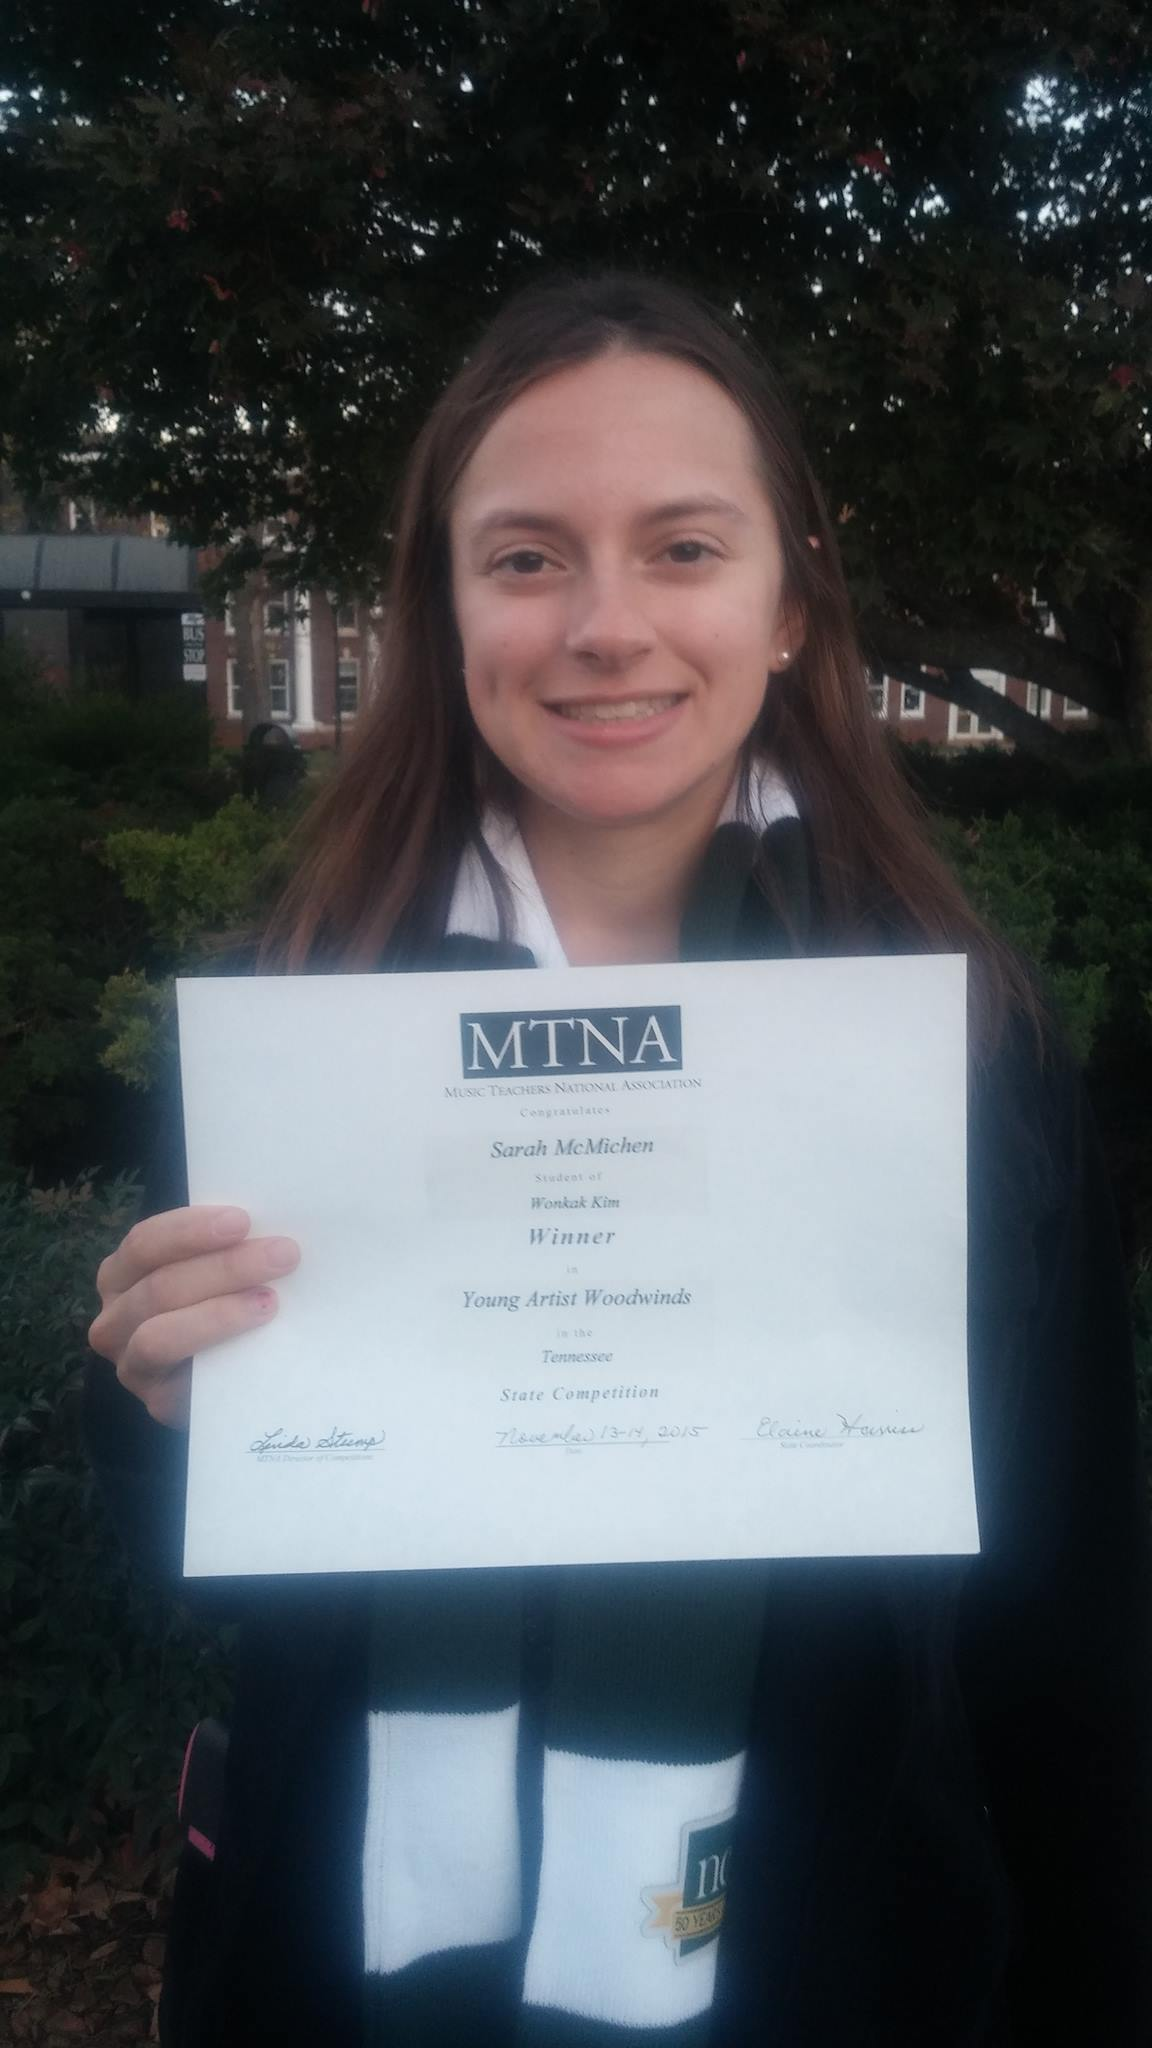 Sarah with her award certificate - MTSU campus